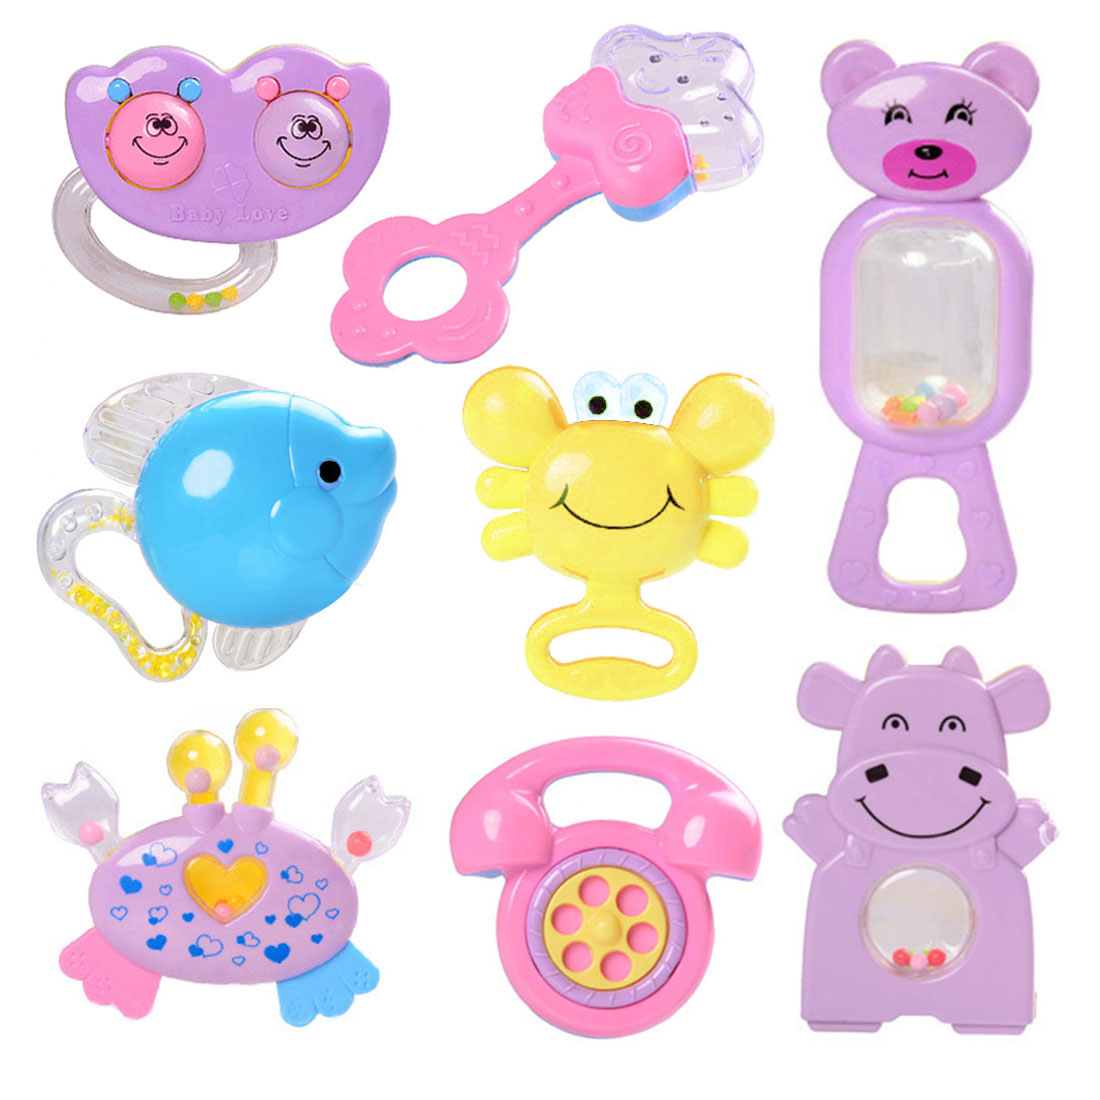 8Pcs Baby Hand Shake Bell Ring Rattles Toy Kids Musical Instrument Toys Random Delivery by